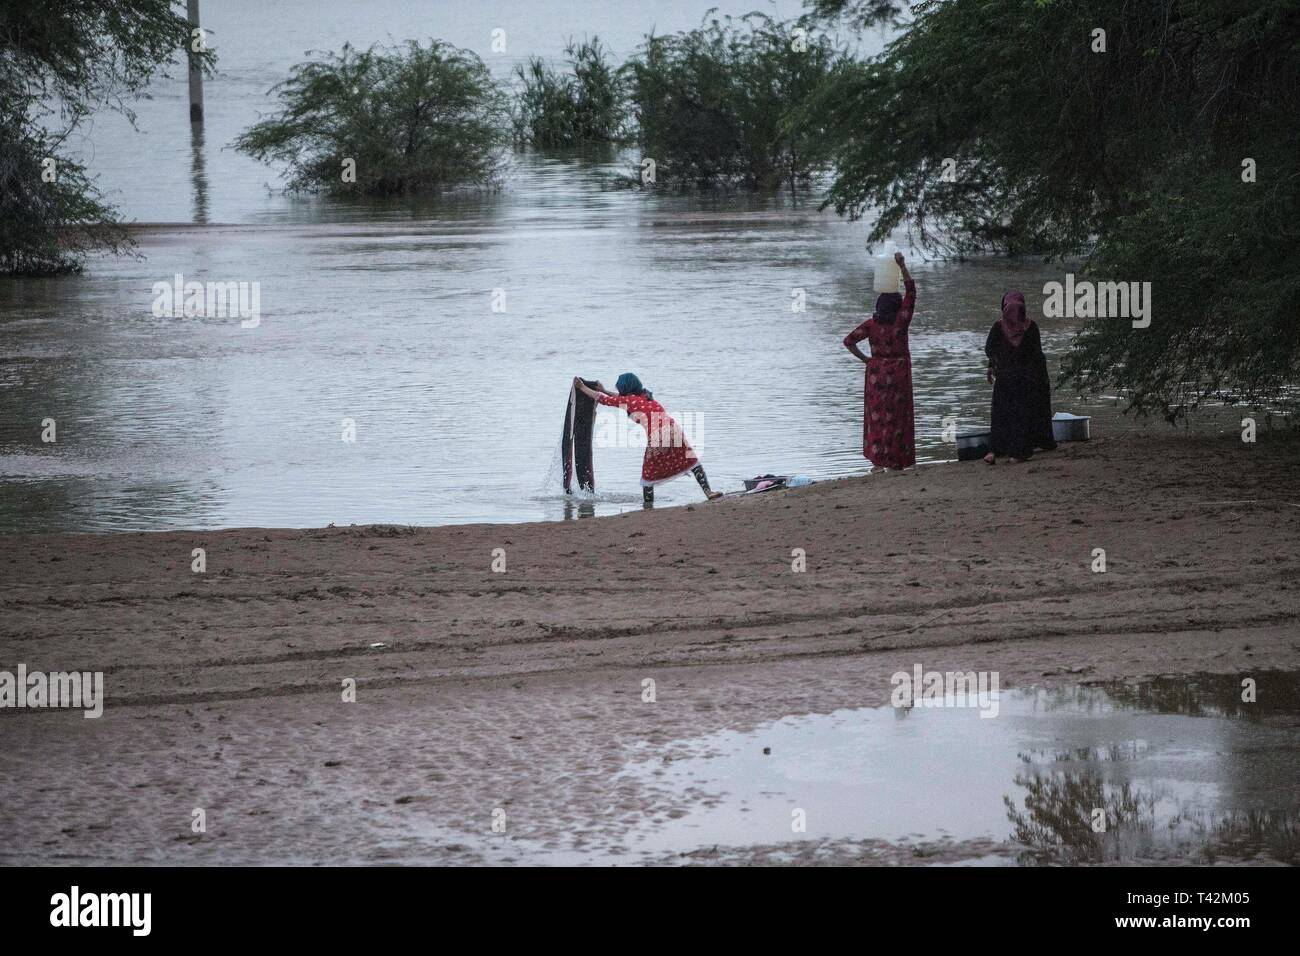 Khuzestan, Iran. 12th Apr, 2019. Women wash clothes in flood waters in Khuzestan province, Iran, on April 12, 2019. The Iranian authorities ordered this week nearly 70,000 people to flee their homes as floodwater poured into Ahvaz, capital city of the southwestern province of Khuzestan. Credit: Ahmad Halabisaz/Xinhua/Alamy Live News - Stock Image